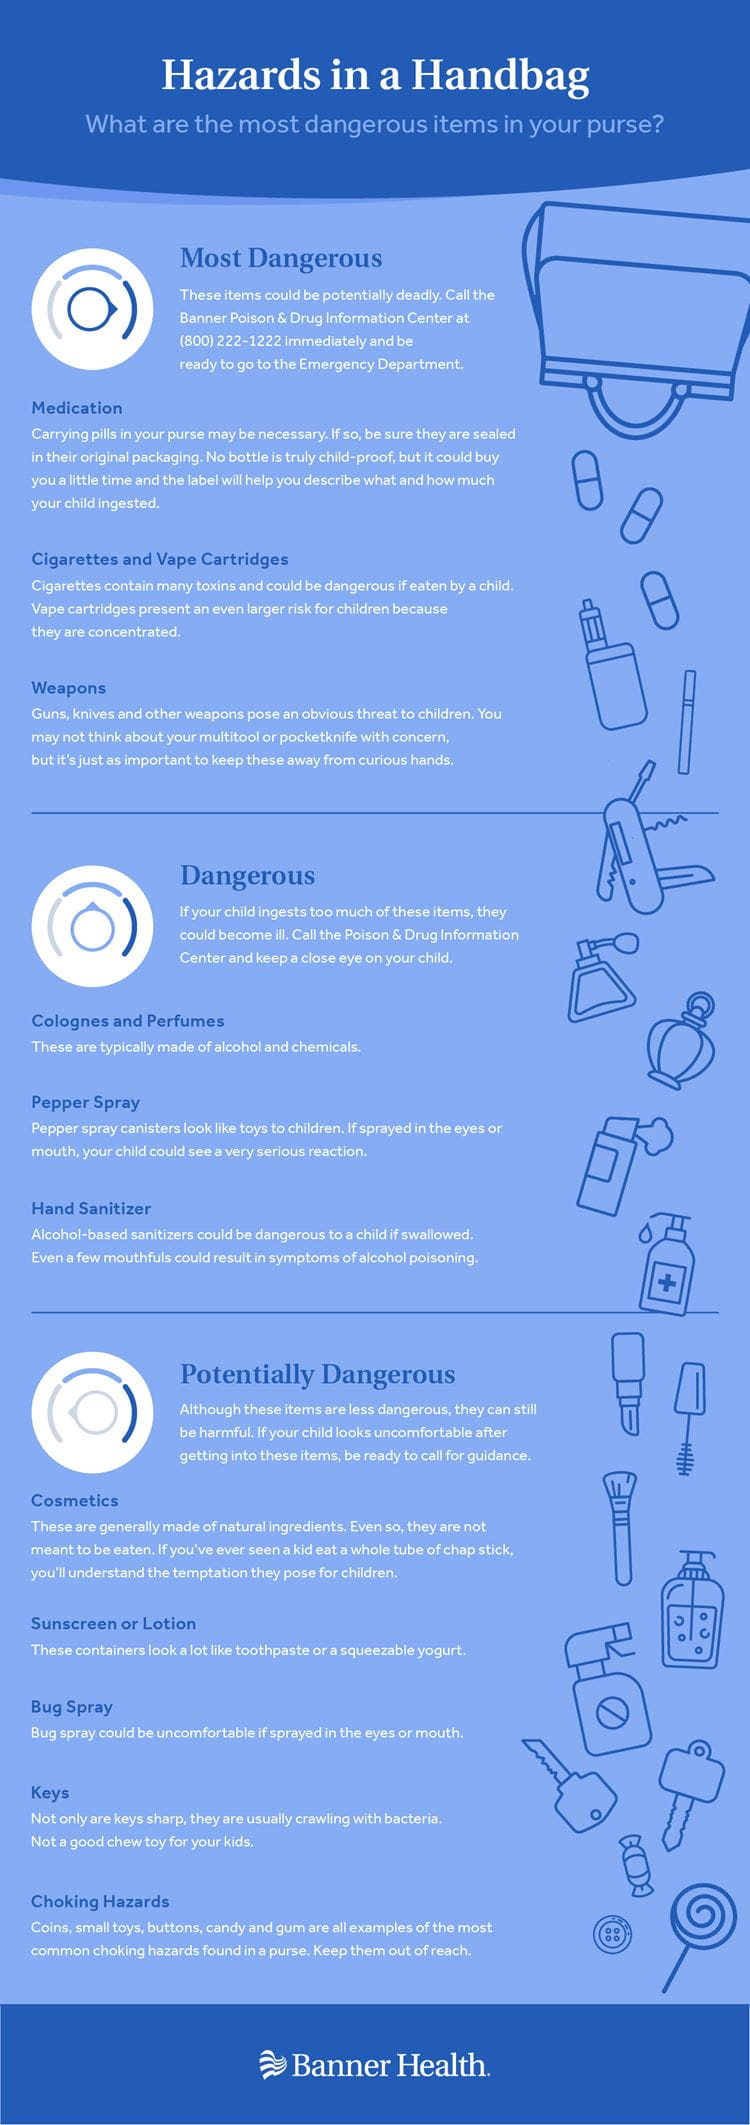 Hazards in a Handbag Infographic